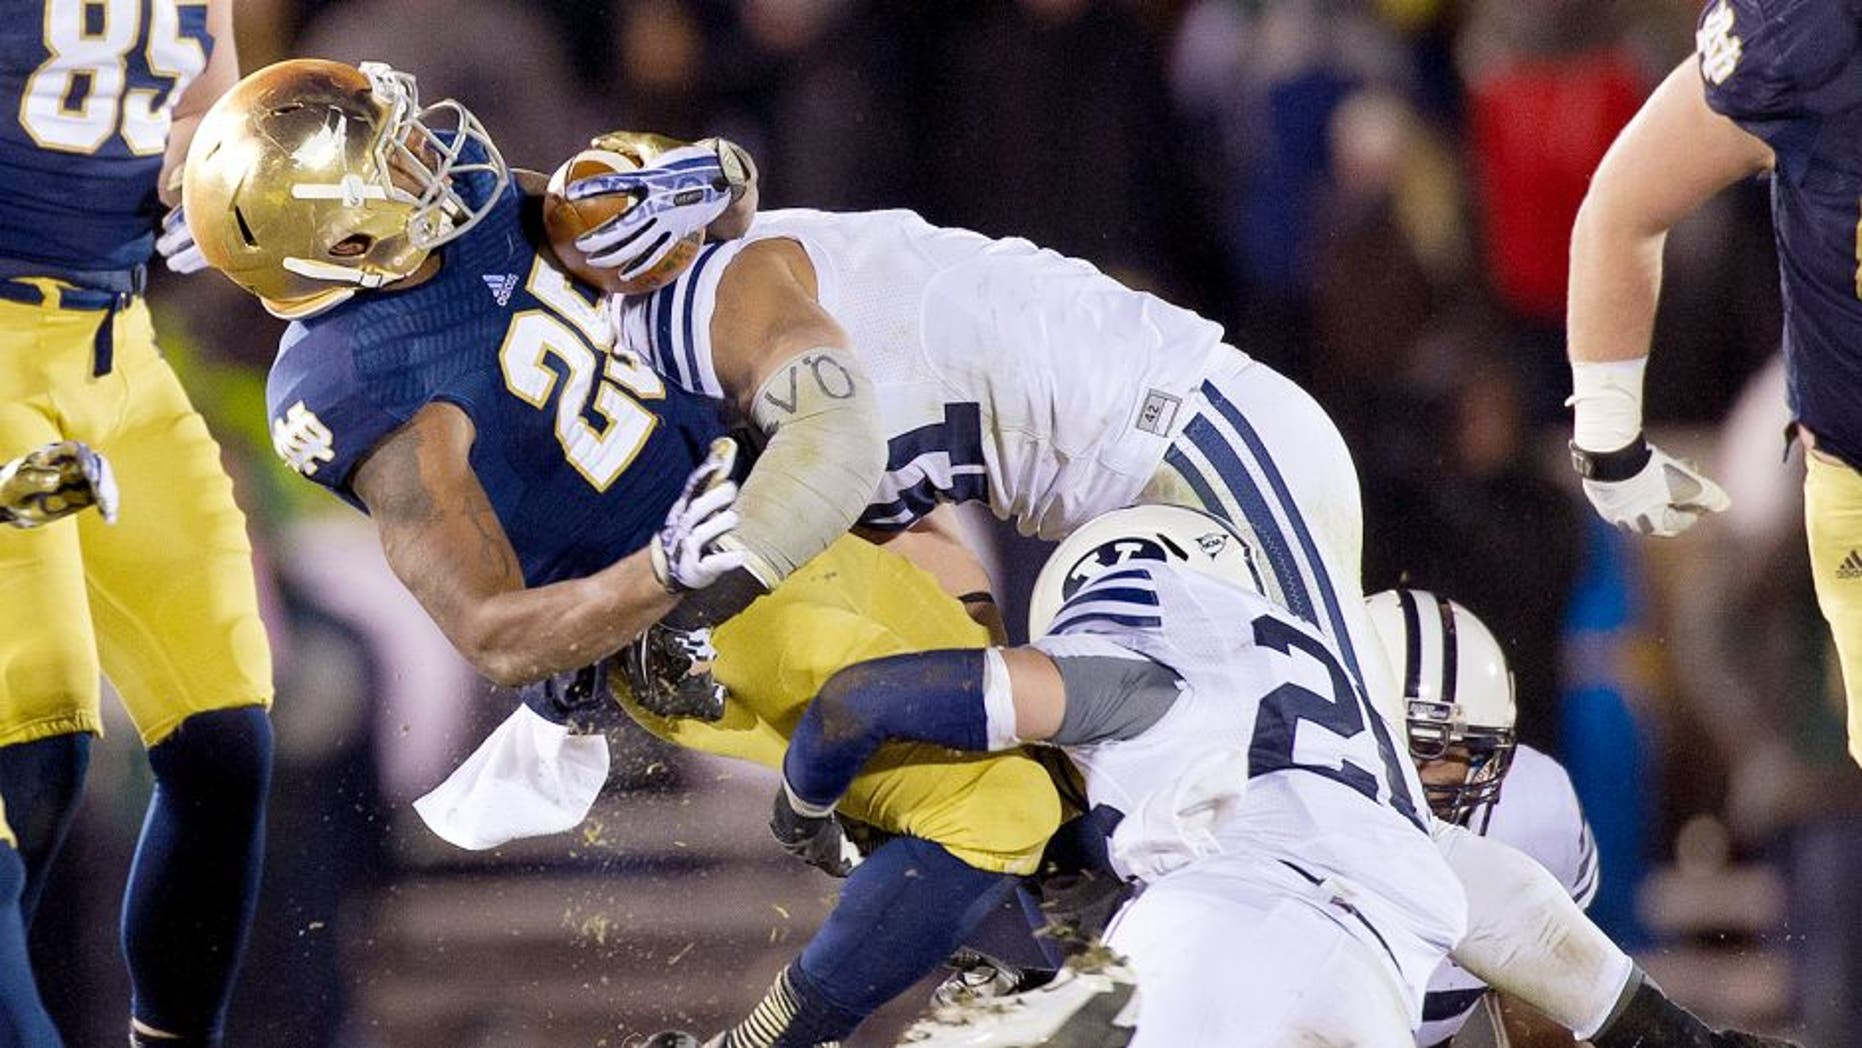 Nov 23, 2013; South Bend, IN, USA; Notre Dame Fighting Irish running back Tarean Folston (25) is tackled by BYU Cougars linebacker Uani 'Unga (41) and safety Craig Bills (20) in the third quarter at Notre Dame Stadium. Notre Dame won 23-13. Mandatory Credit: Matt Cashore-USA TODAY Sports